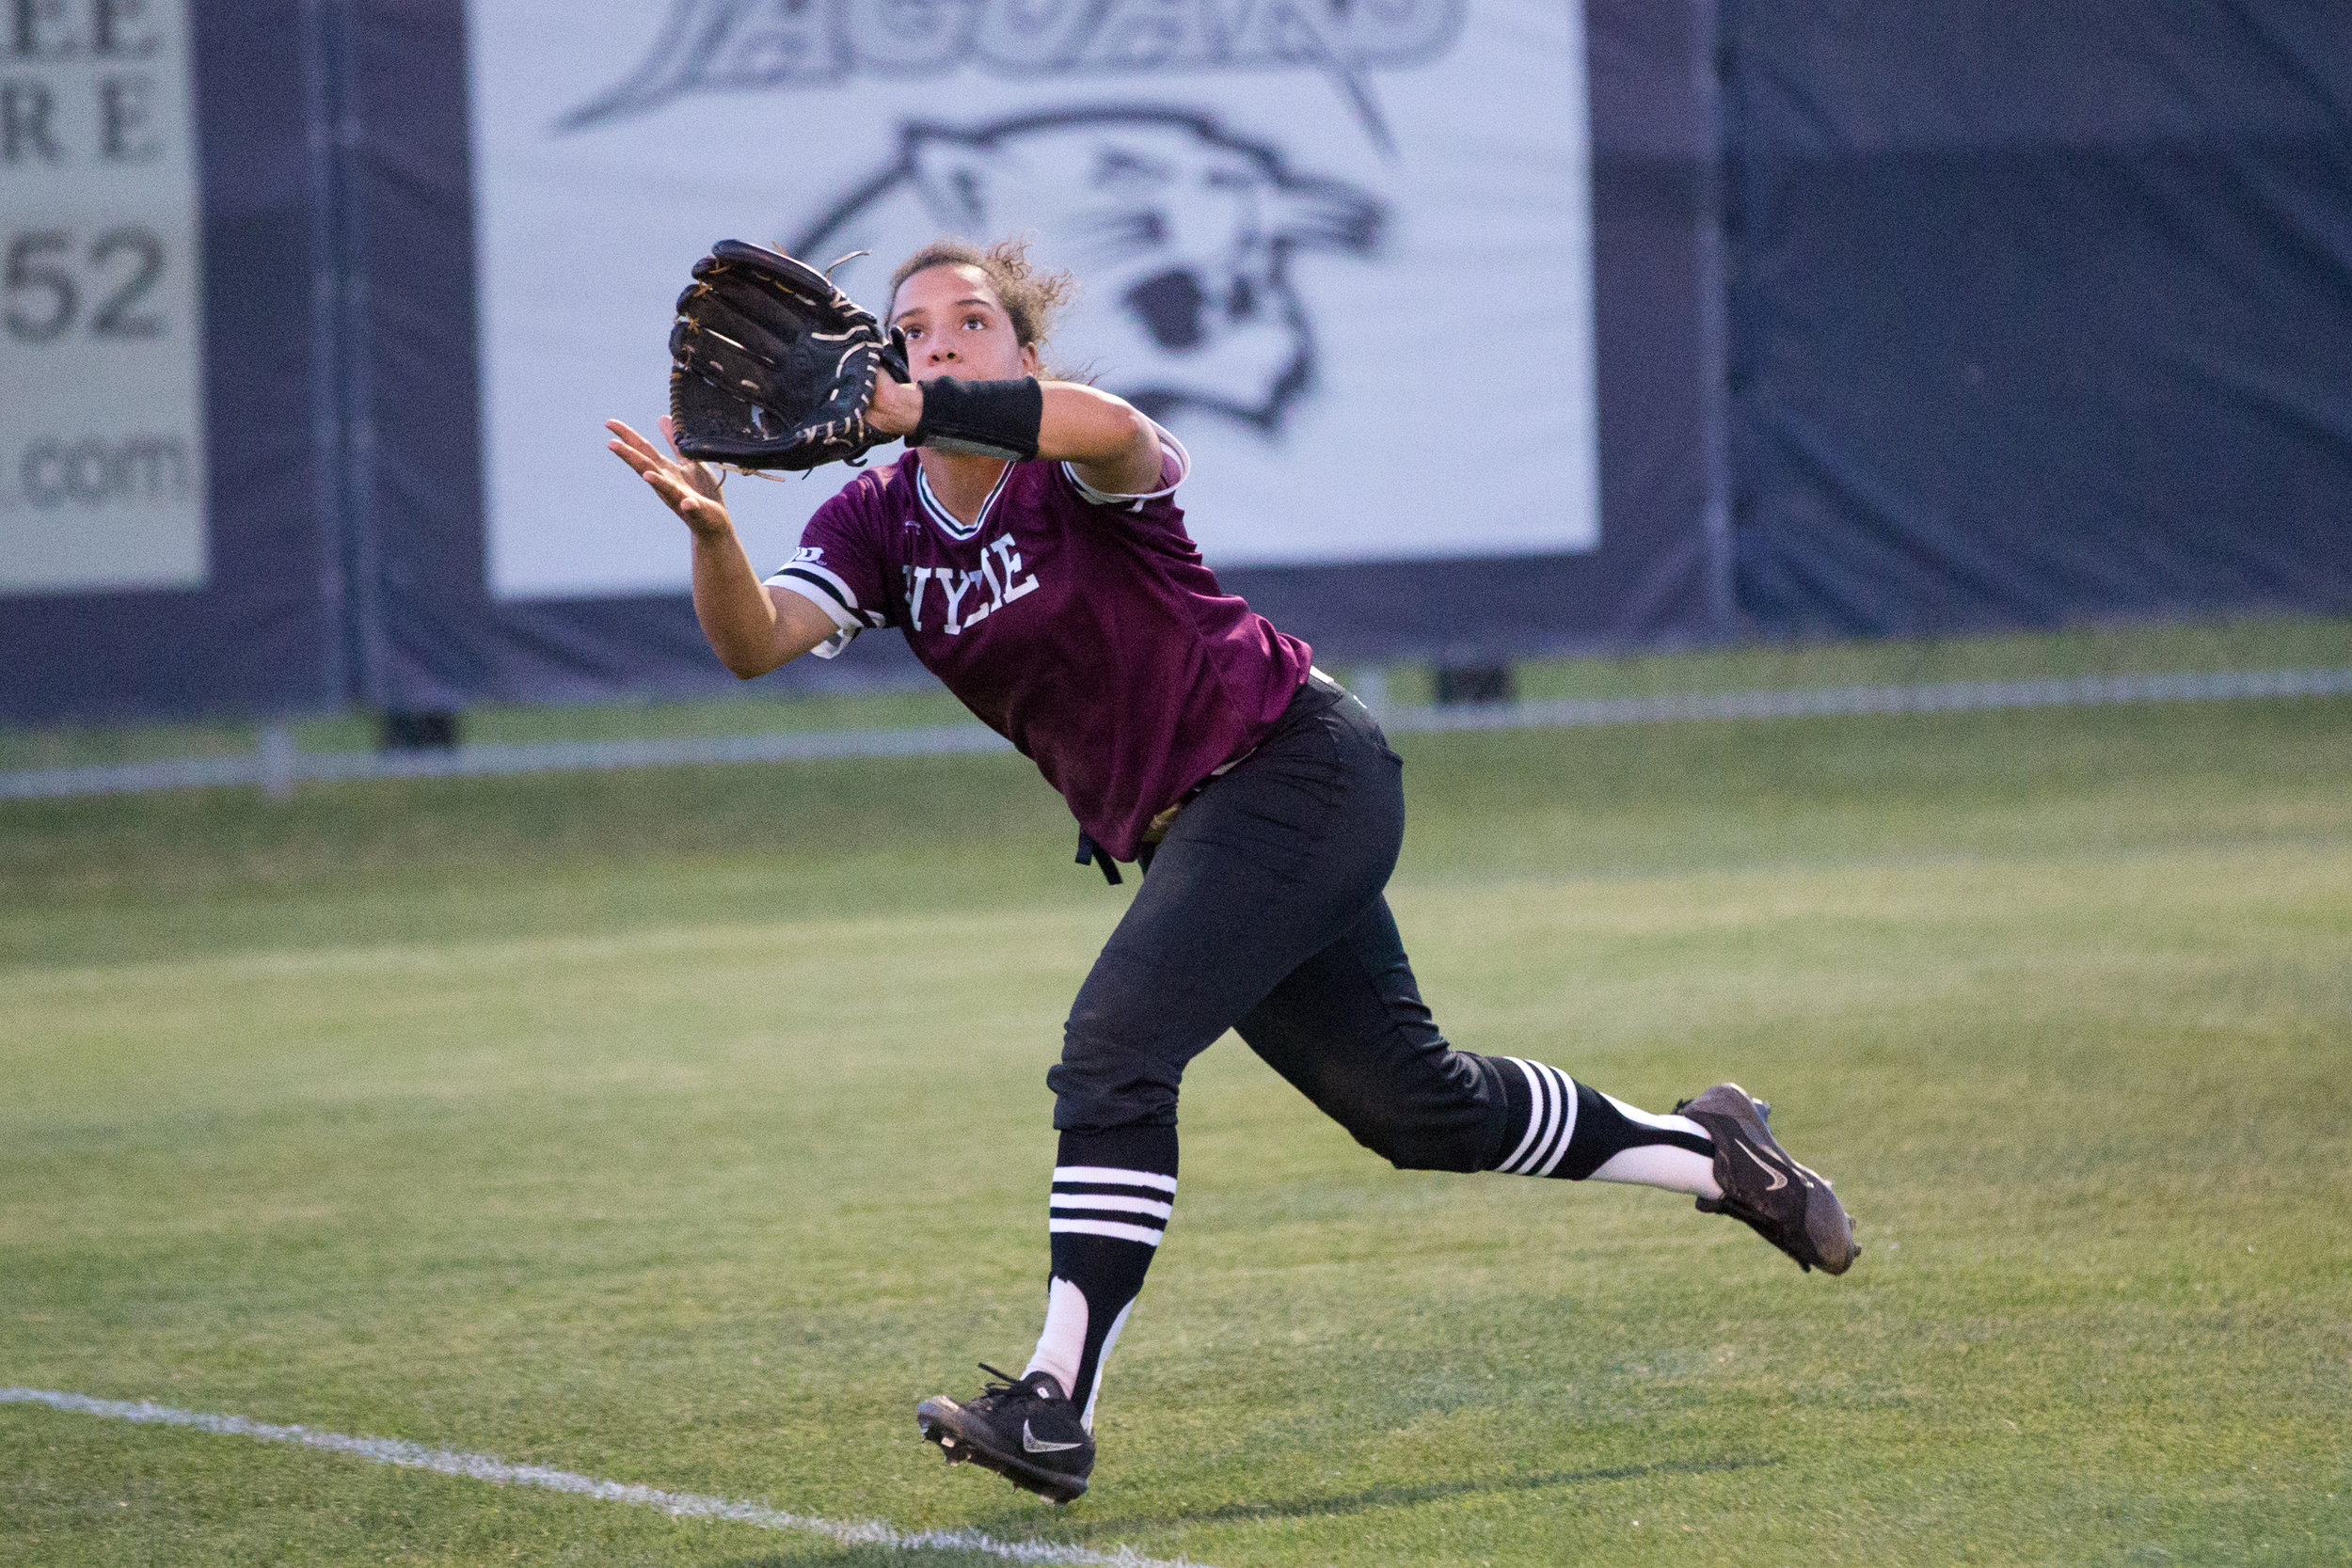 5_18 Wylie Softball-167.jpg